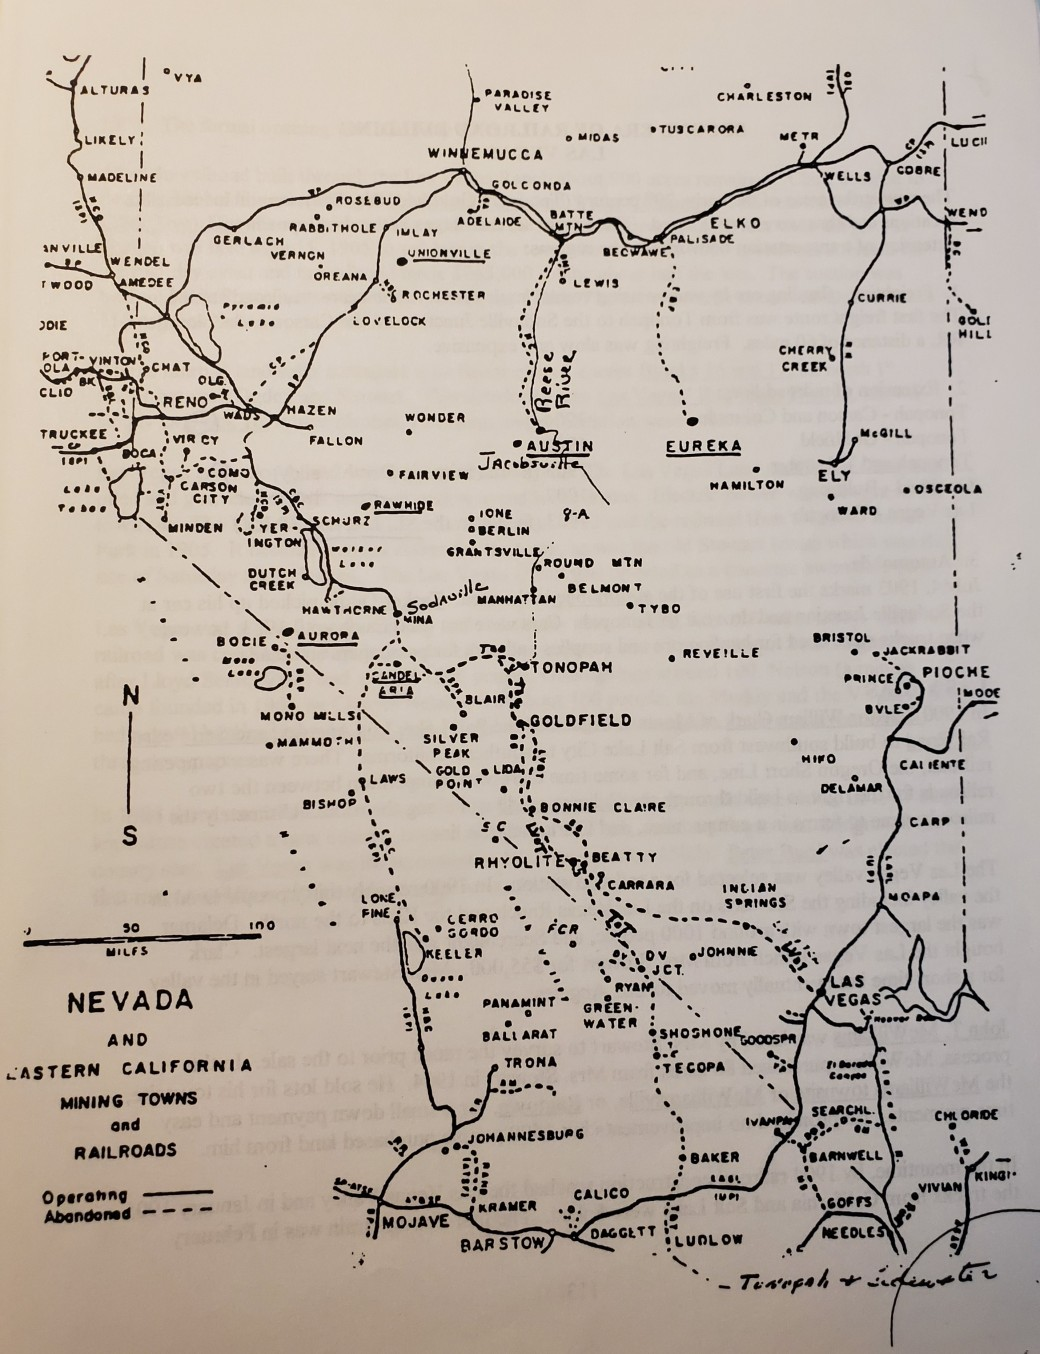 mining towns and rails